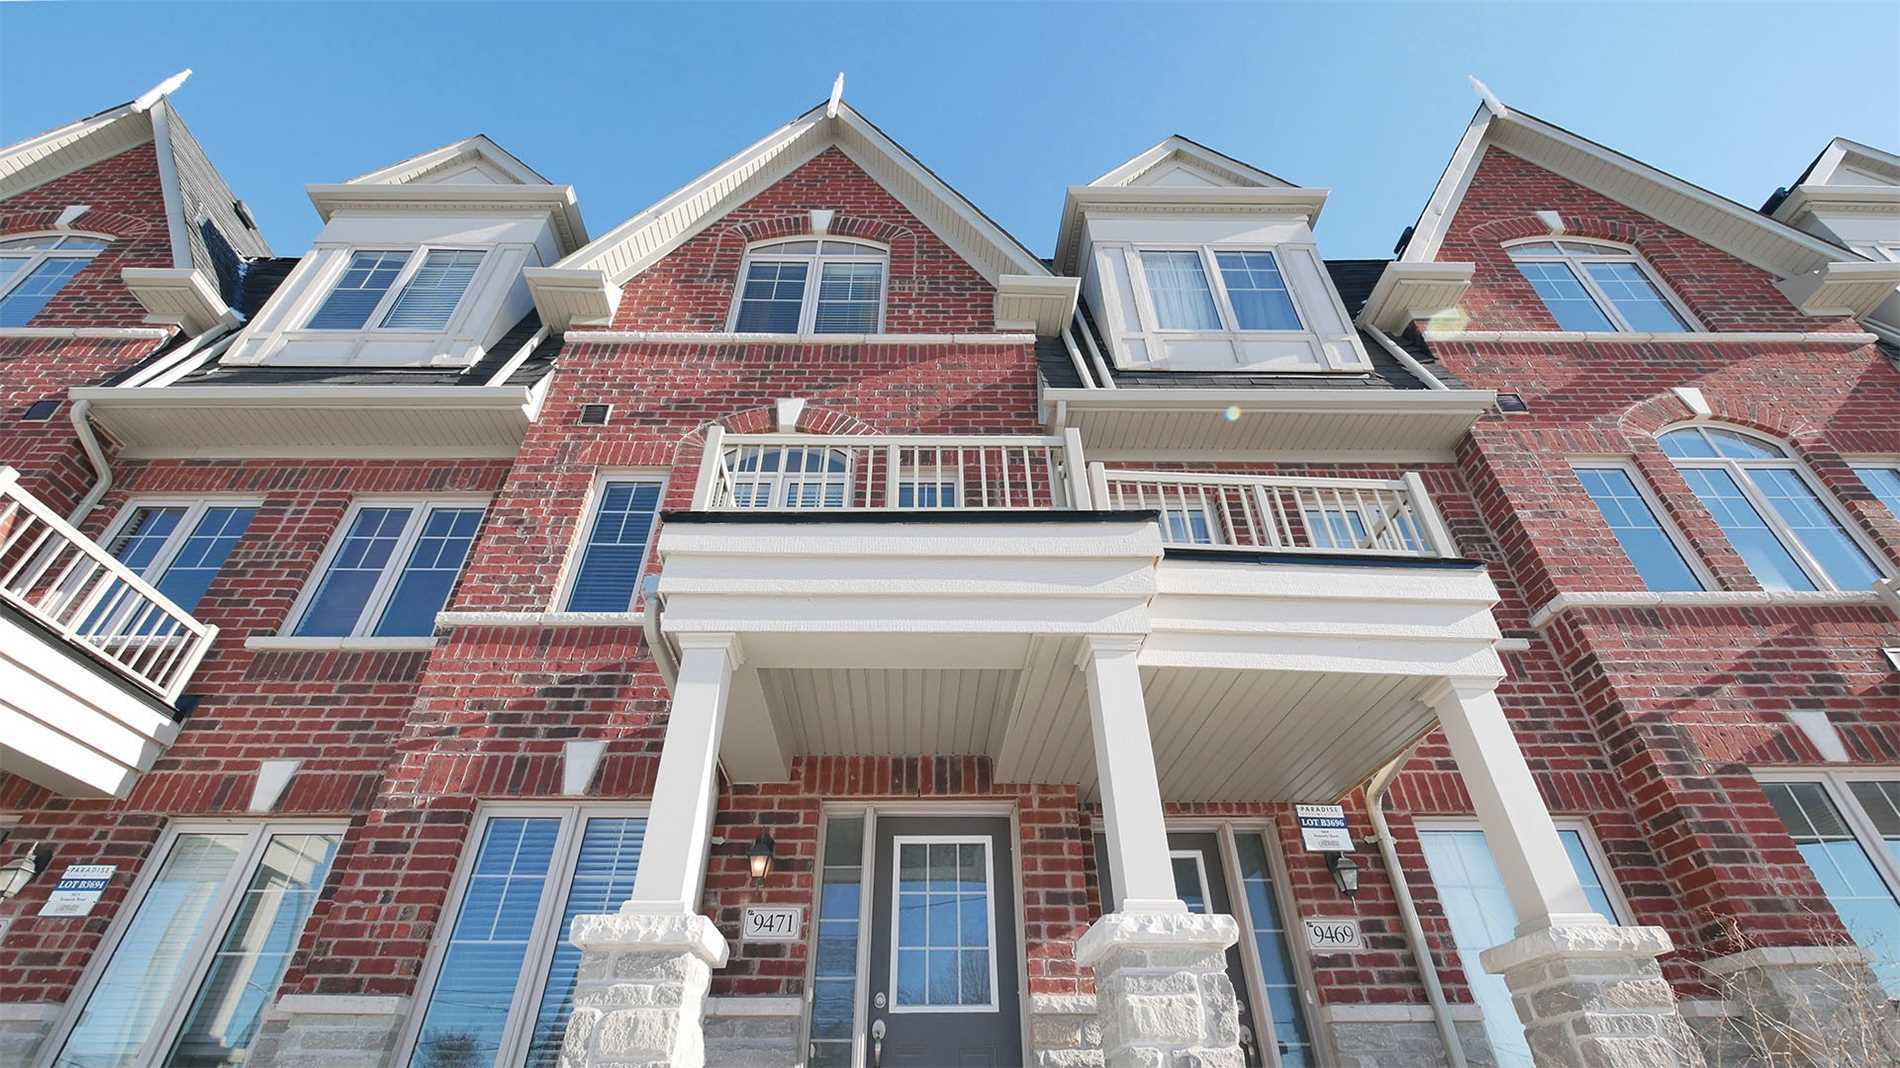 pictures of 9471 Kennedy Rd, Markham L6C 0W8